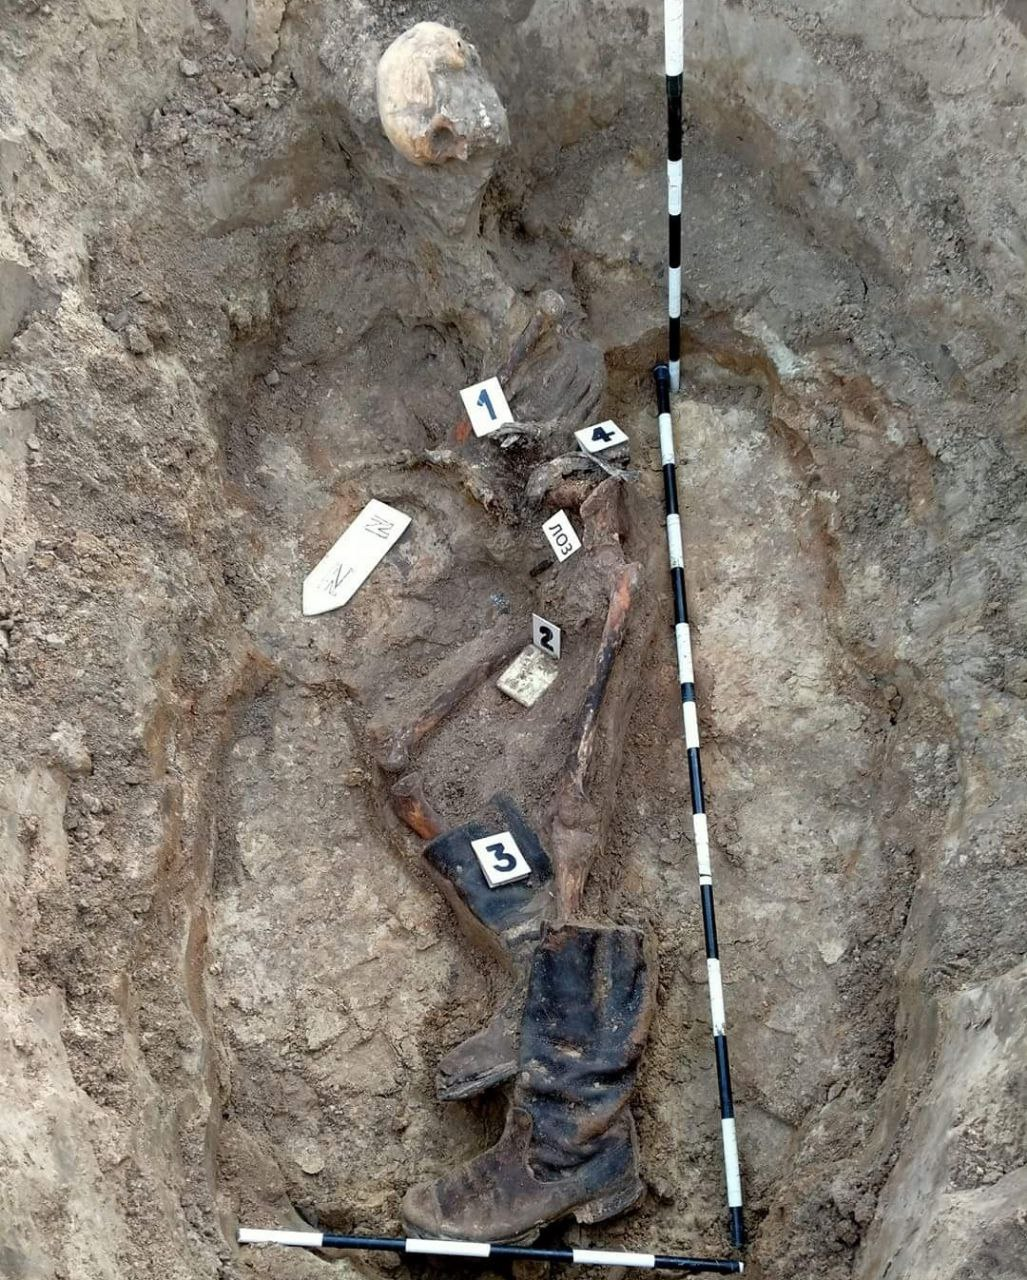 Body of a soldier lay at a depth of 70-80 centimeters.